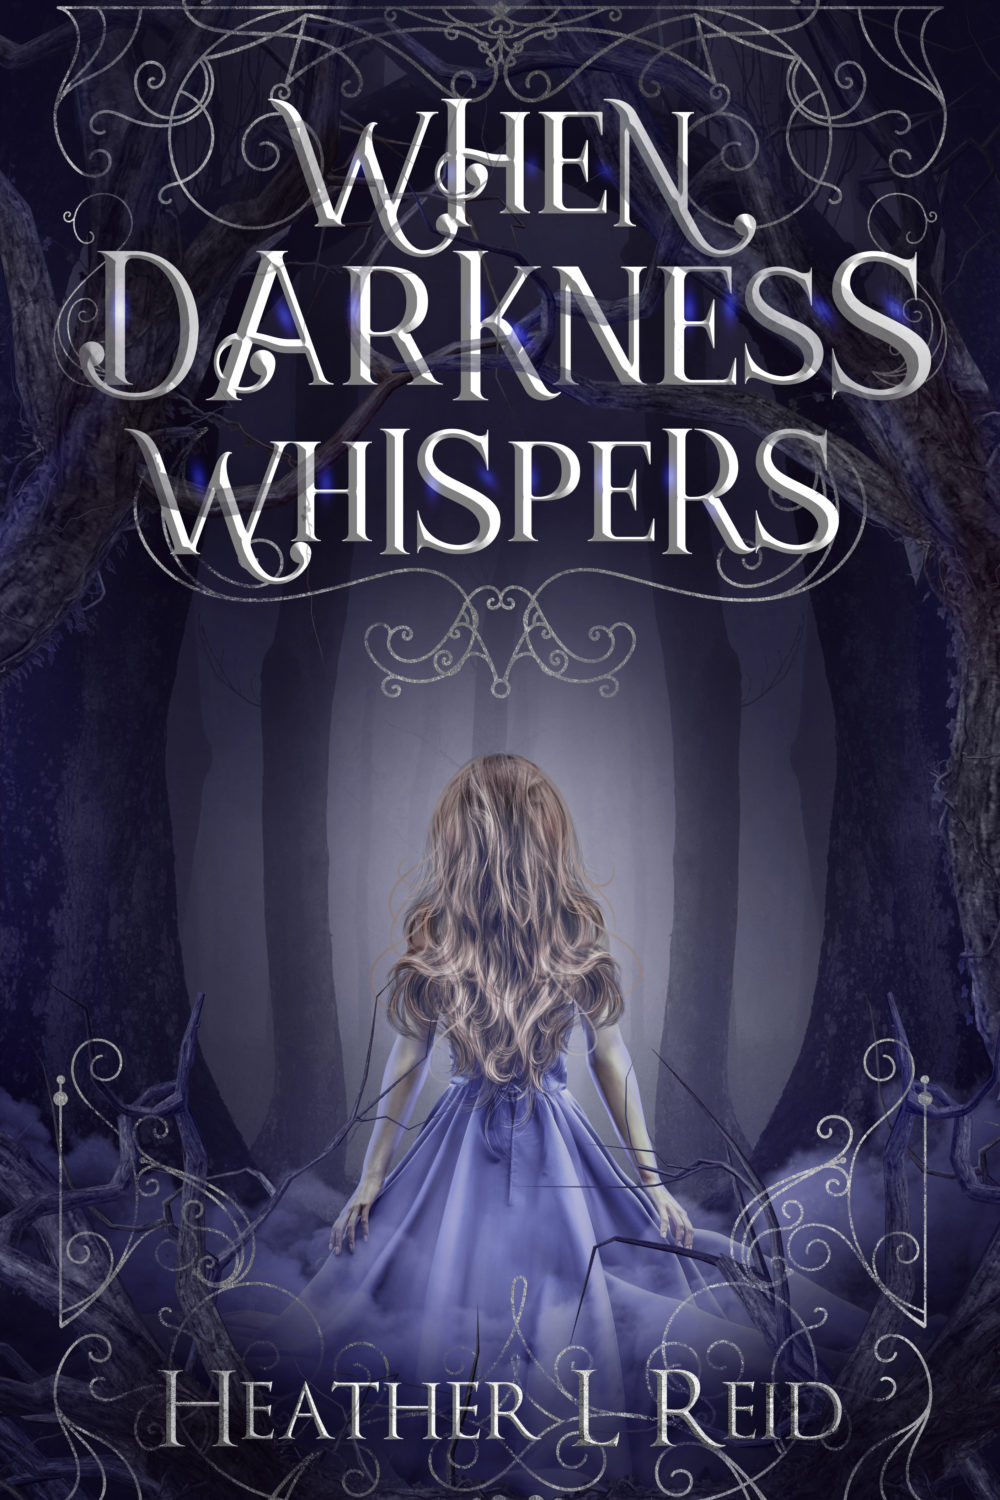 When Darkness Whispers by Heather L. Reid